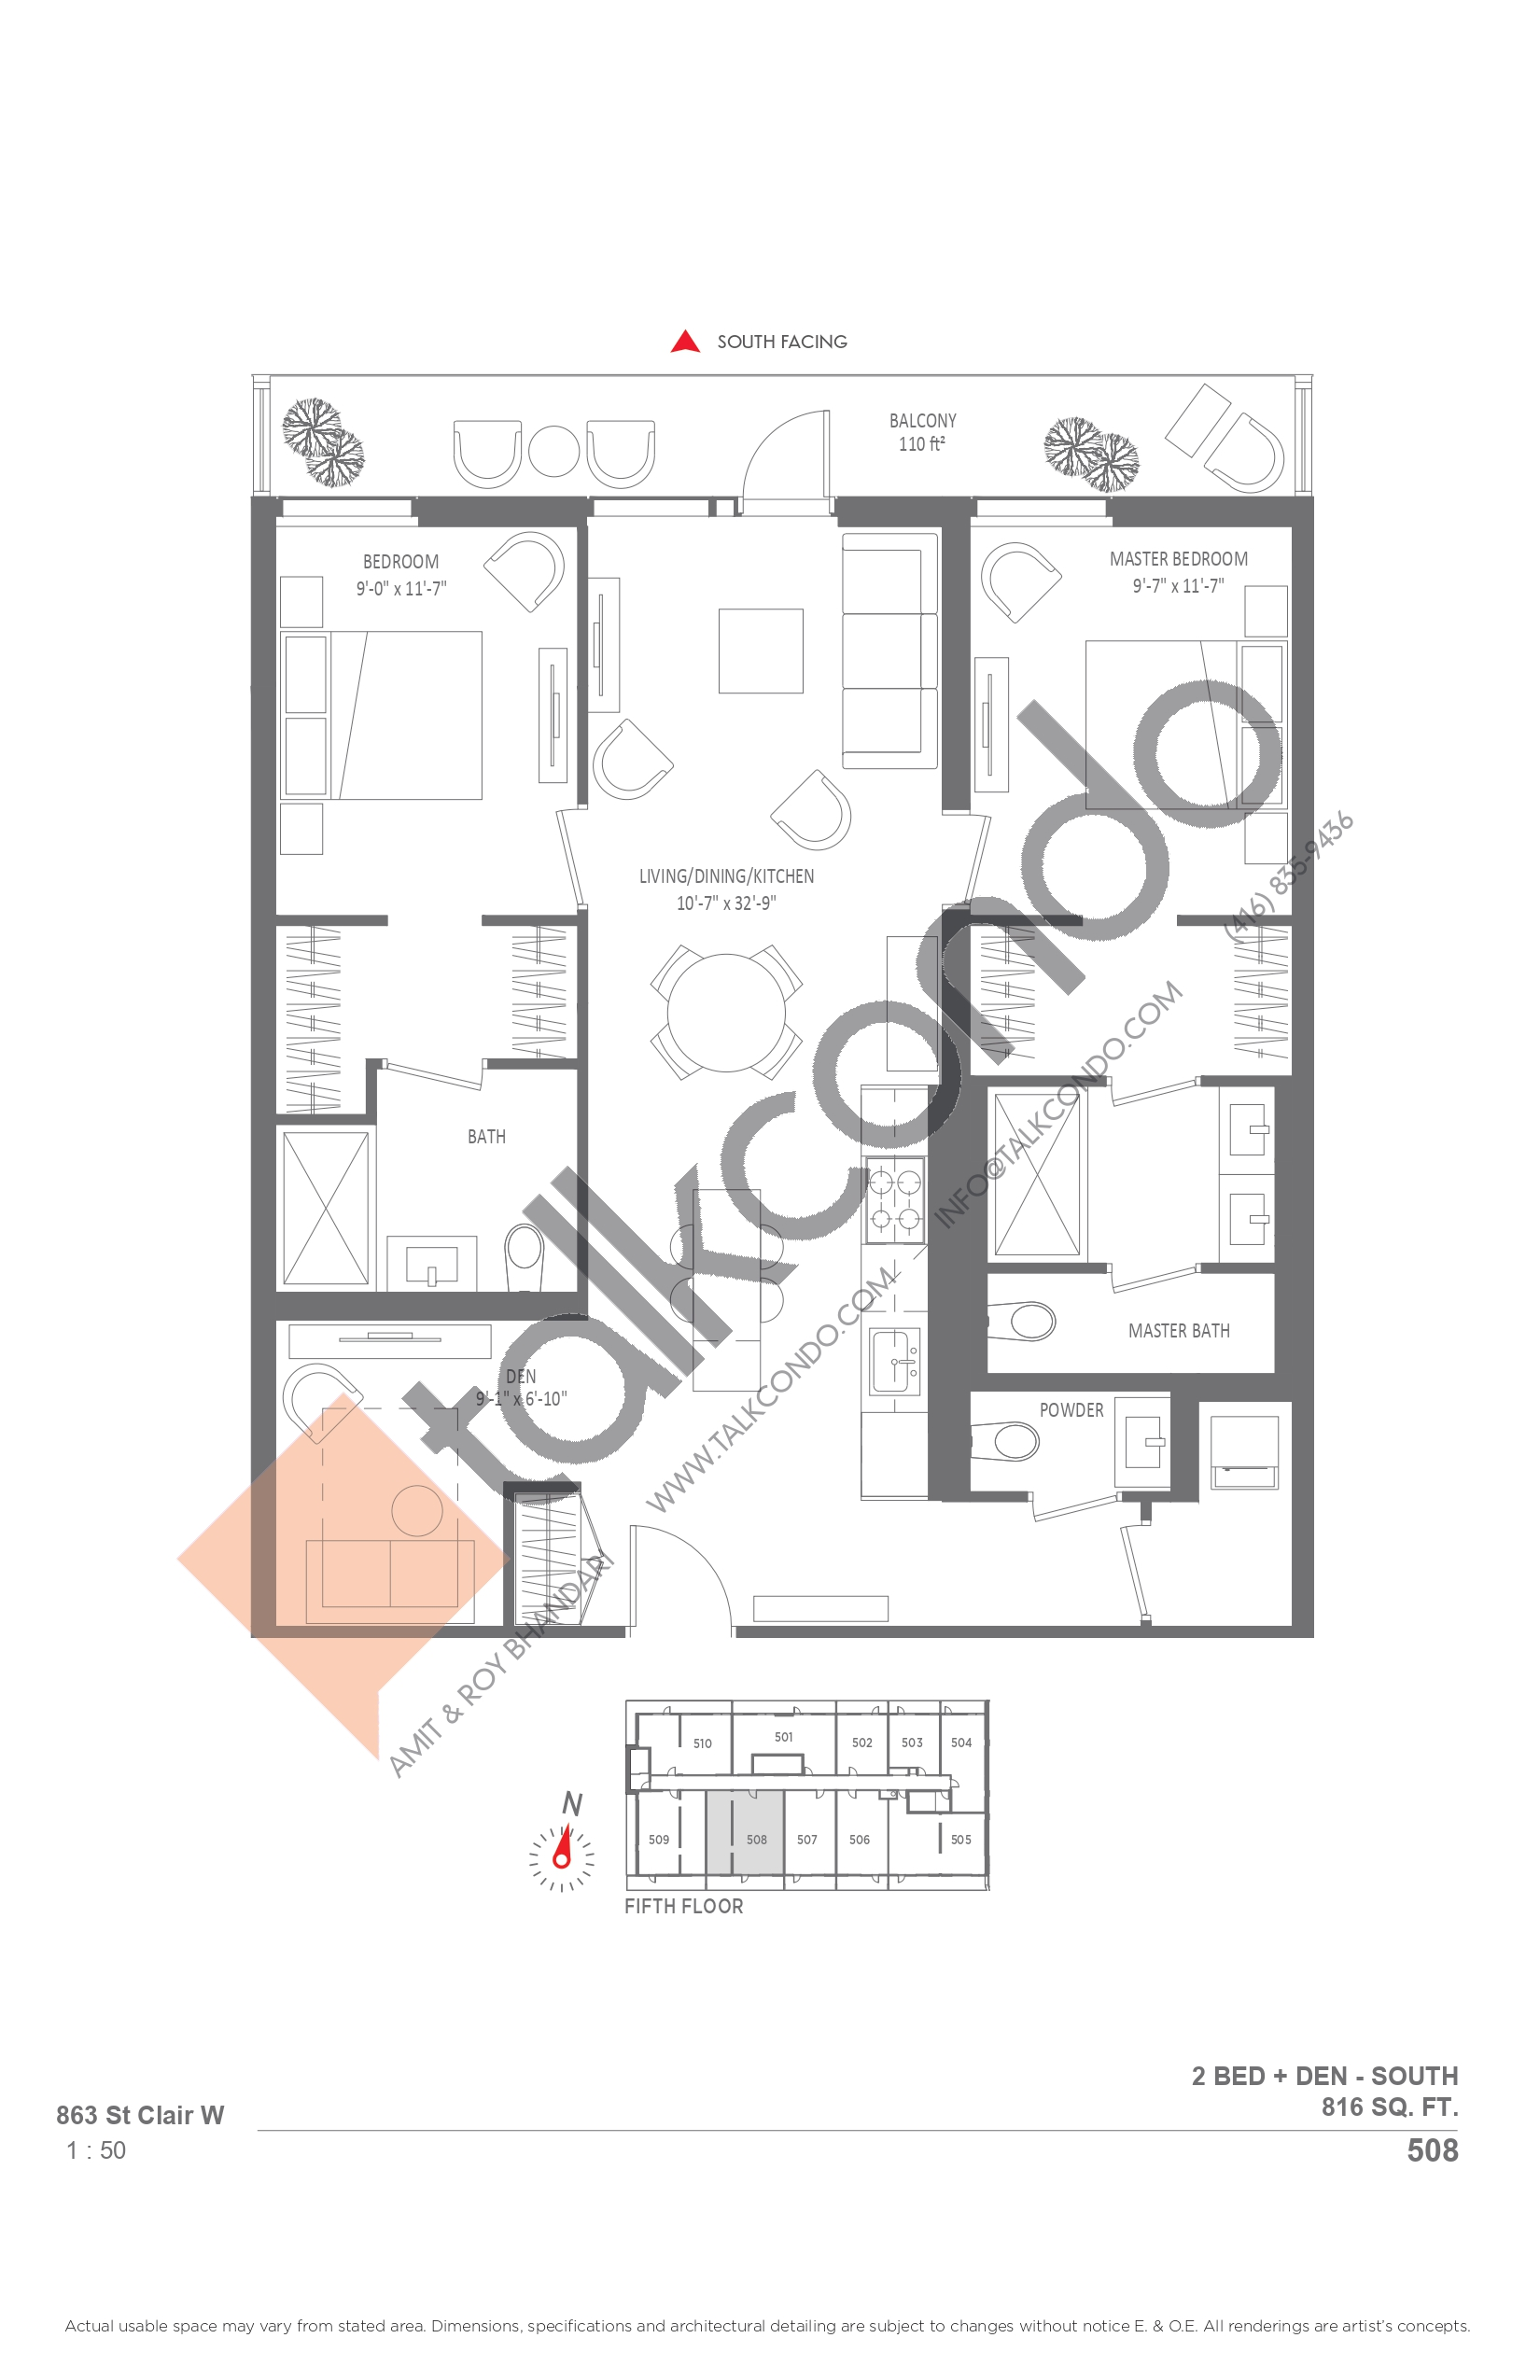 508 Floor Plan at Monza Condos - 816 sq.ft